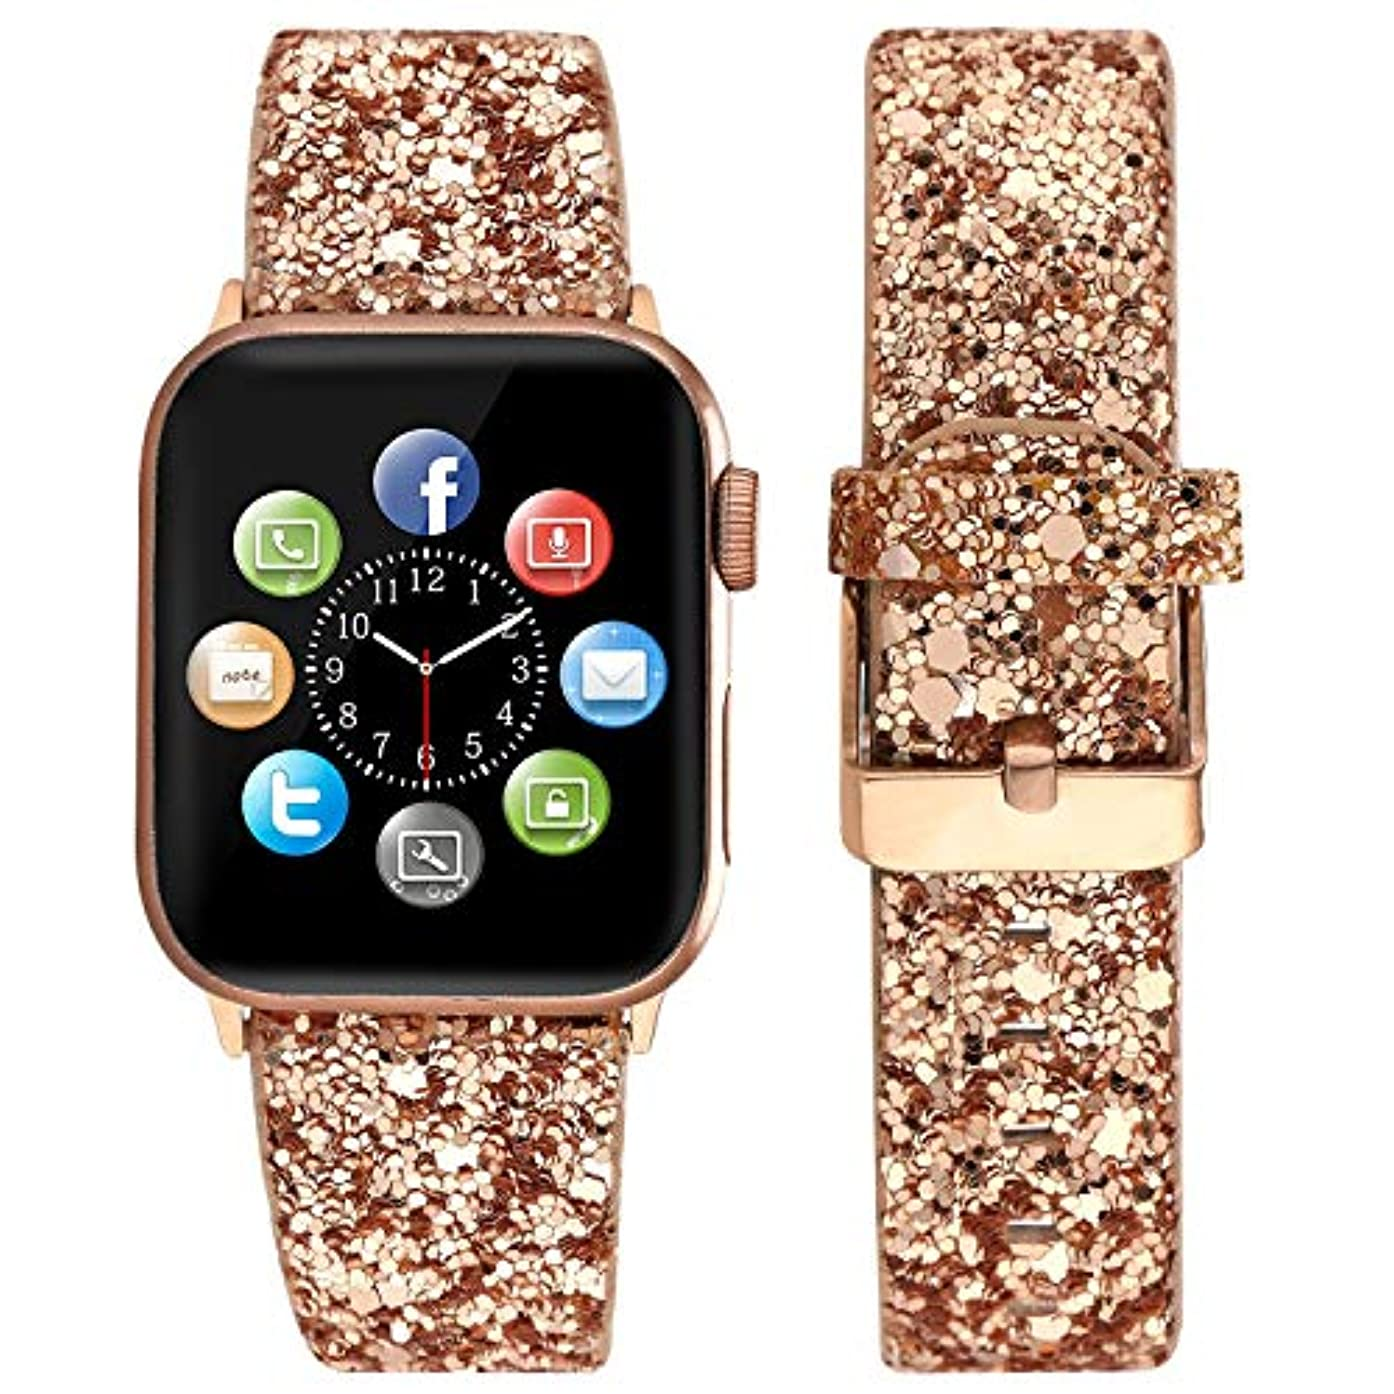 Doweiss Compatible for Apple Watch Bands Glitter with Rose Gold Adapter and Buckle,Replacement Straps for Girl and Ladies Cute Bling Glittery Compatible for iWatch 38mm/40m/42mm/44mm